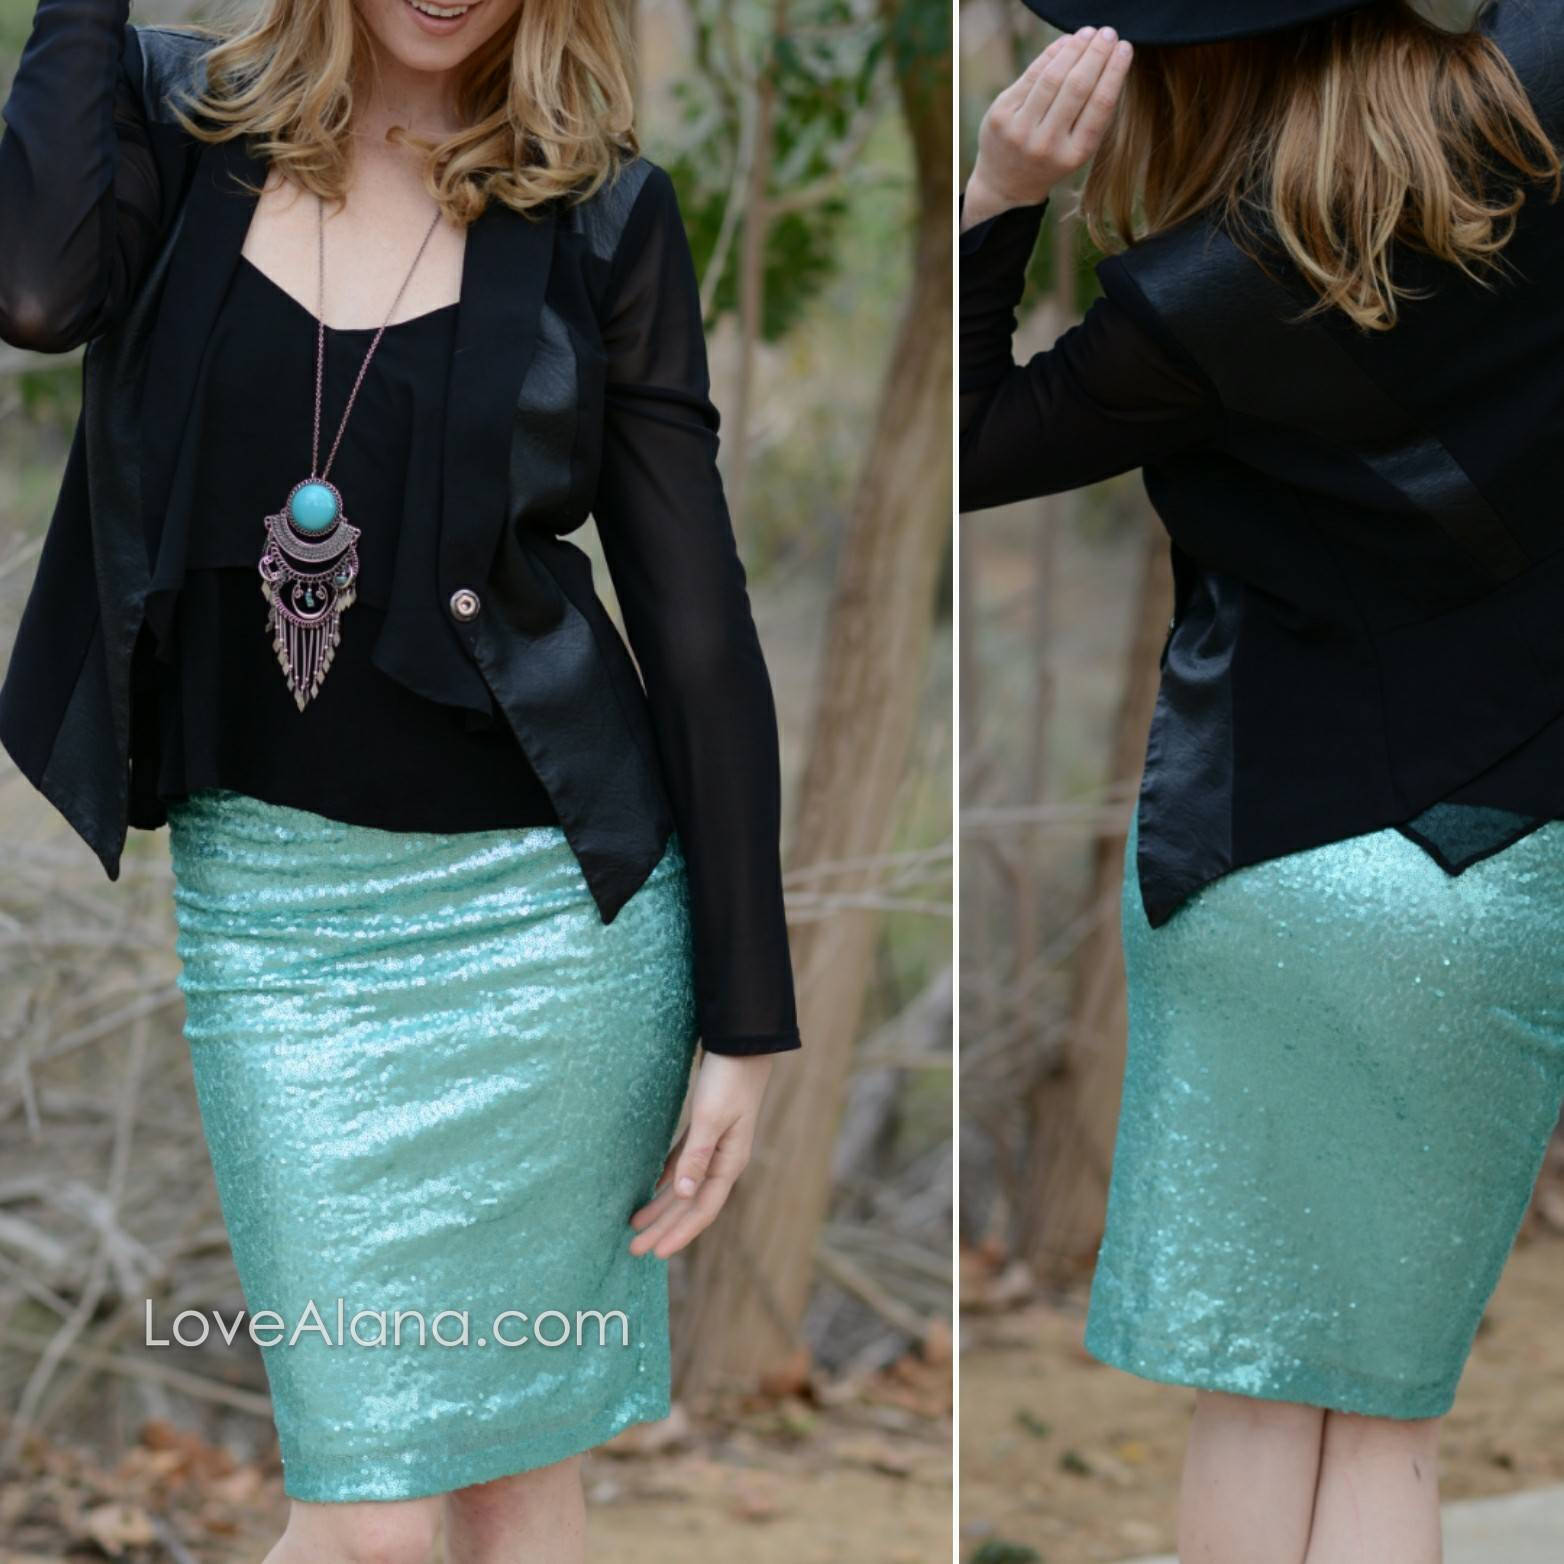 ec56167dec 10% OFF CLEARANCE M Only - Light Blue Sequin Skirt- 21 inches ...